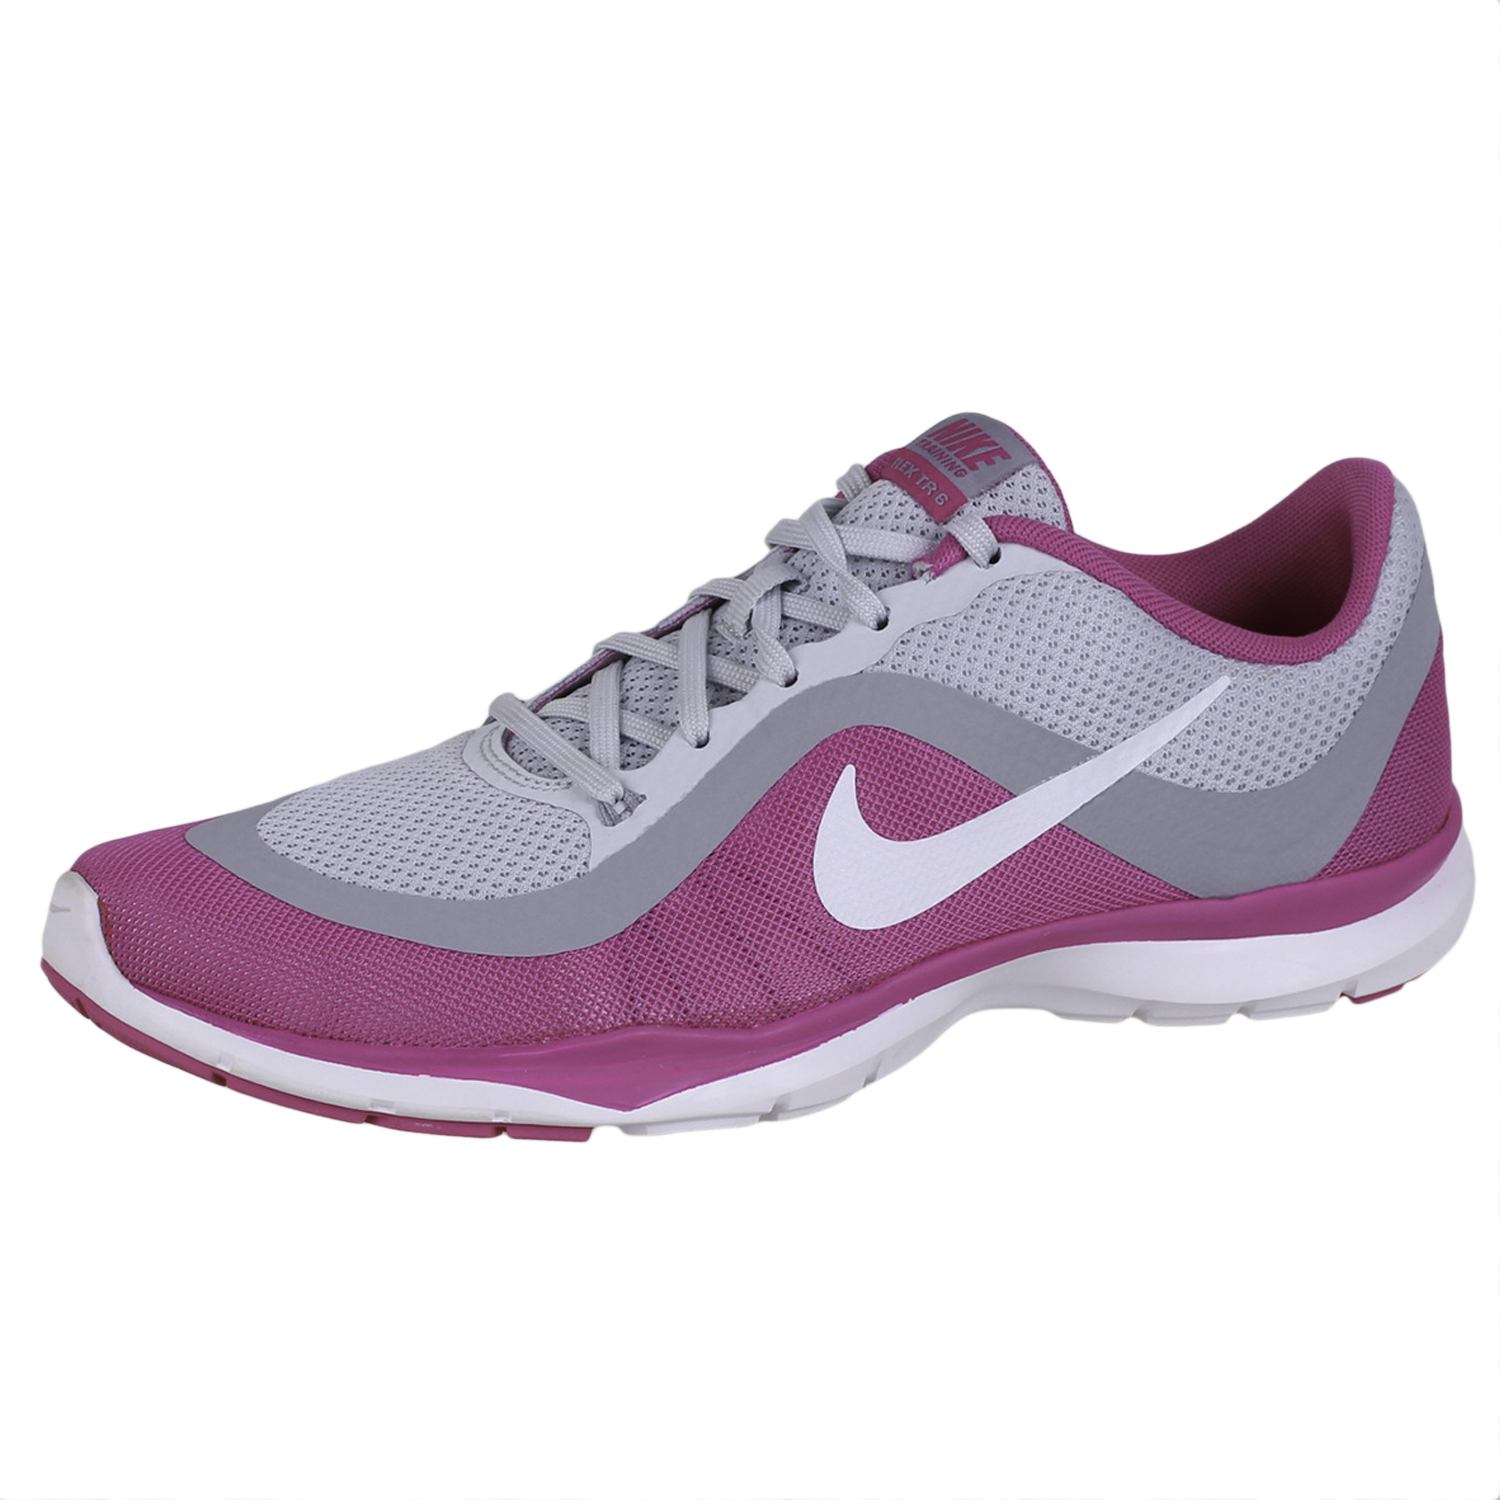 reputable site aae01 657af Details about Nike Women s Flex Trainer 6 Training Shoes 831217-005-9.5 Grey  Pink 9.5